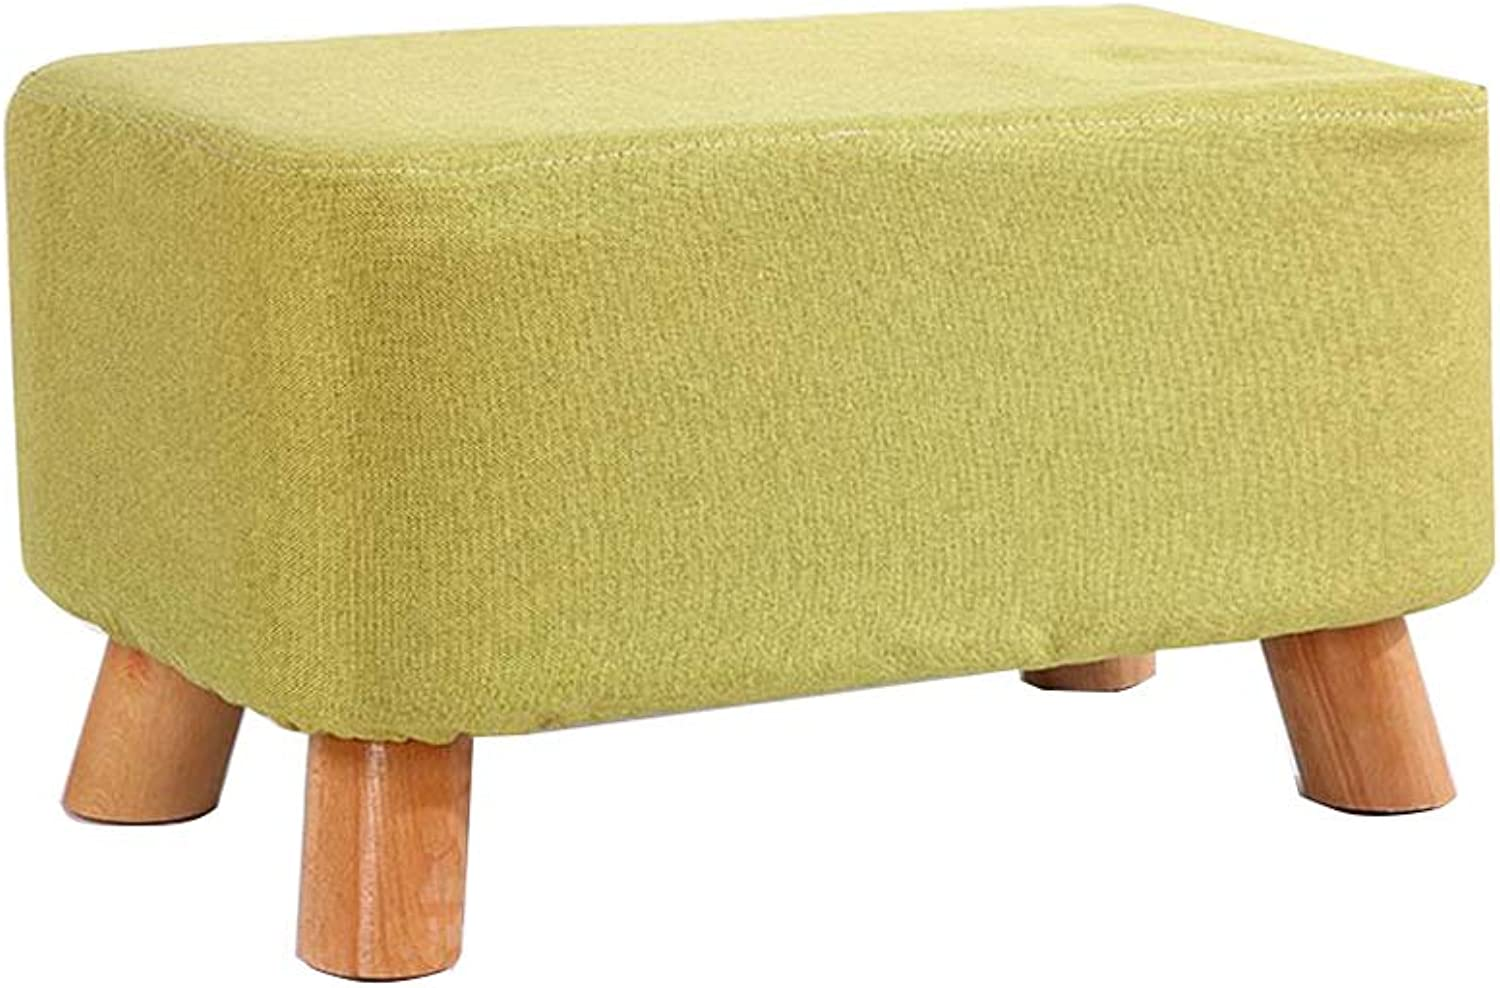 LPD Brands Change shoes Bench Small Stool Cloth Solid Wood Living Room Sofa Stool Multiple Sizes (color   Green 60cm)